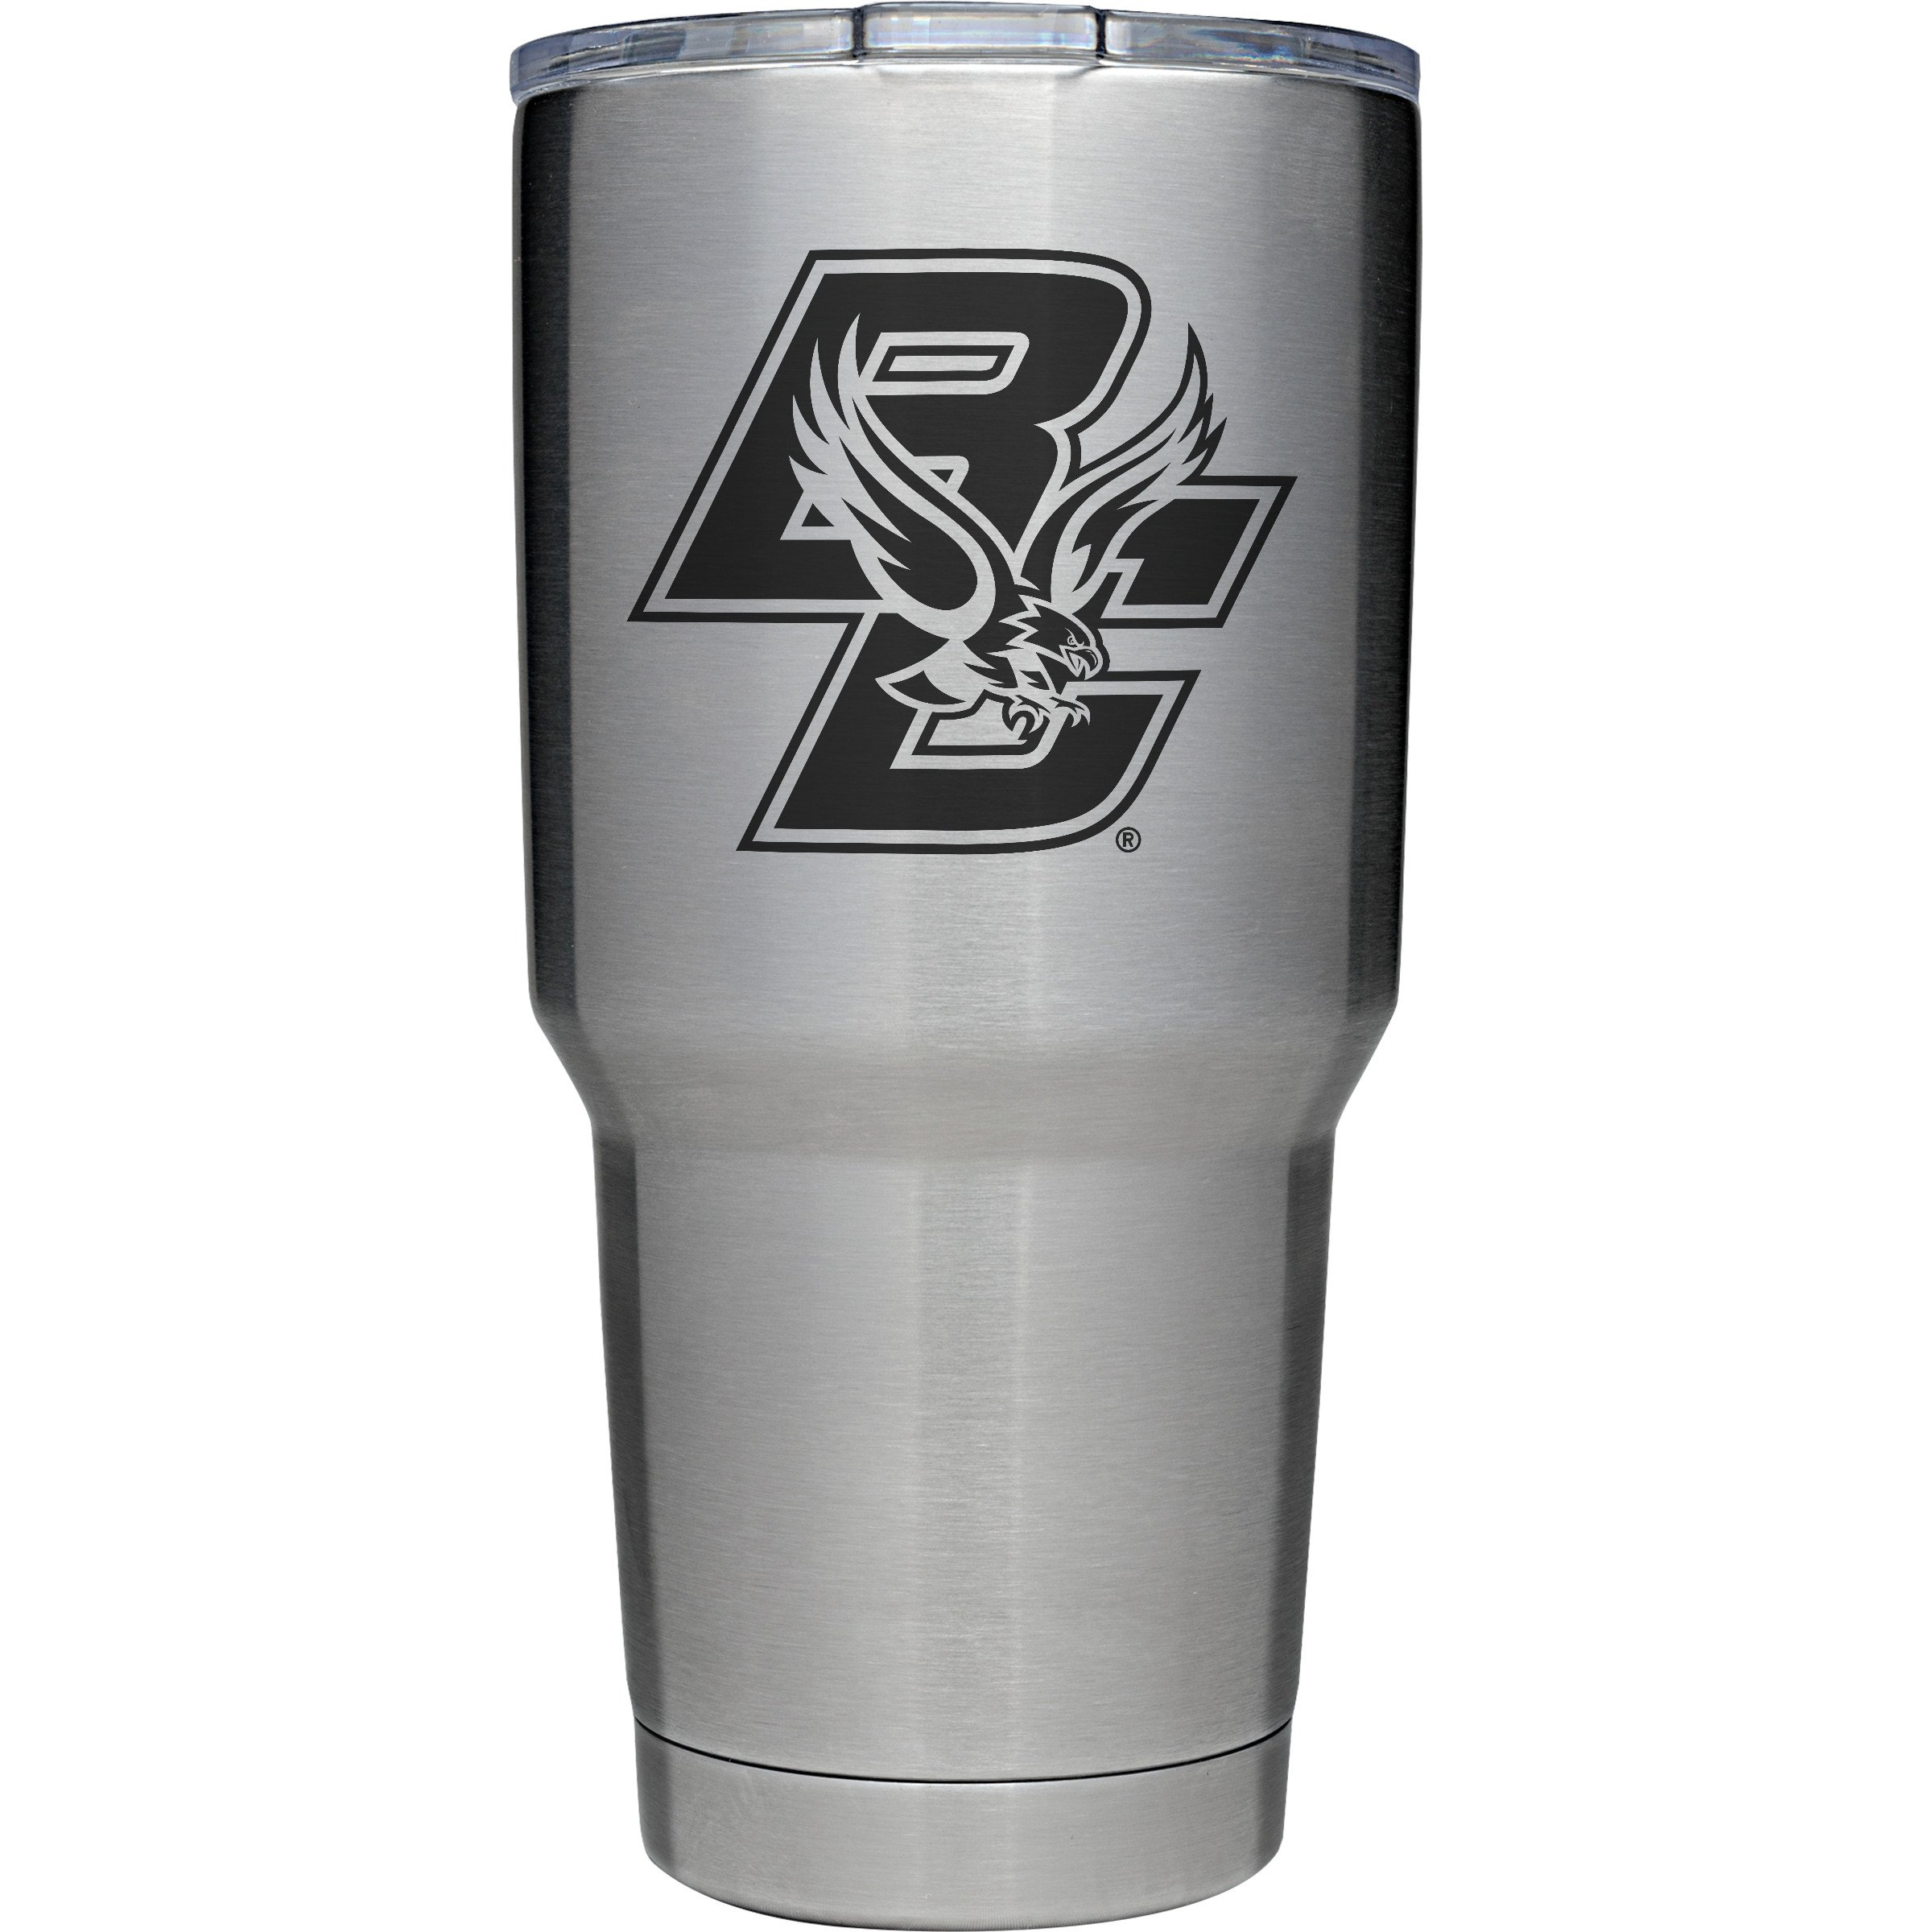 YETI Officially Licensed Collegiate Series Rambler, 30oz Tumbler with MagSlider Lid, Boston College